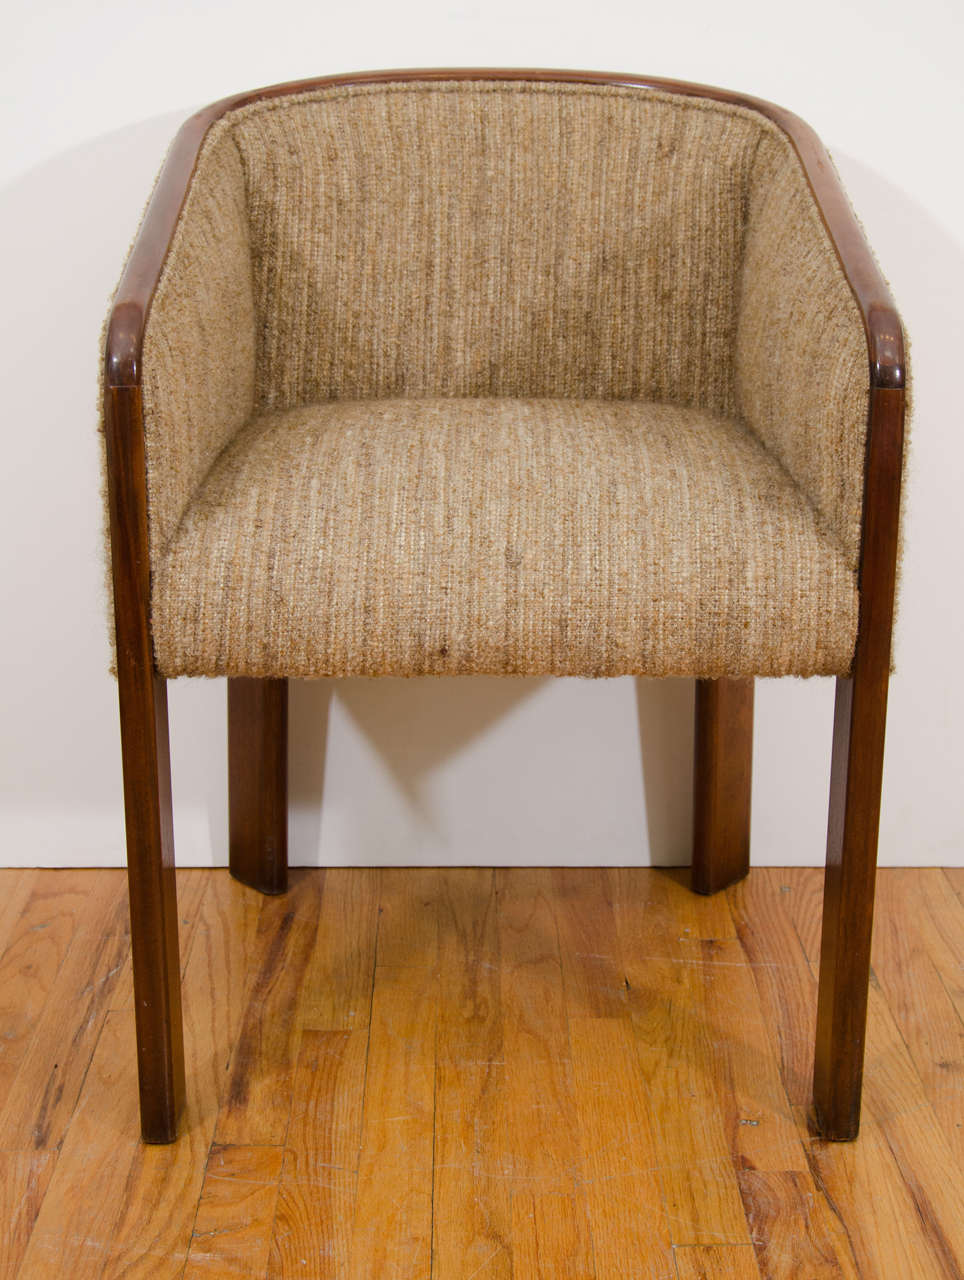 A Pair of Baker Furniture Tub Armchairs in Wool Upholstery at 1stdibs